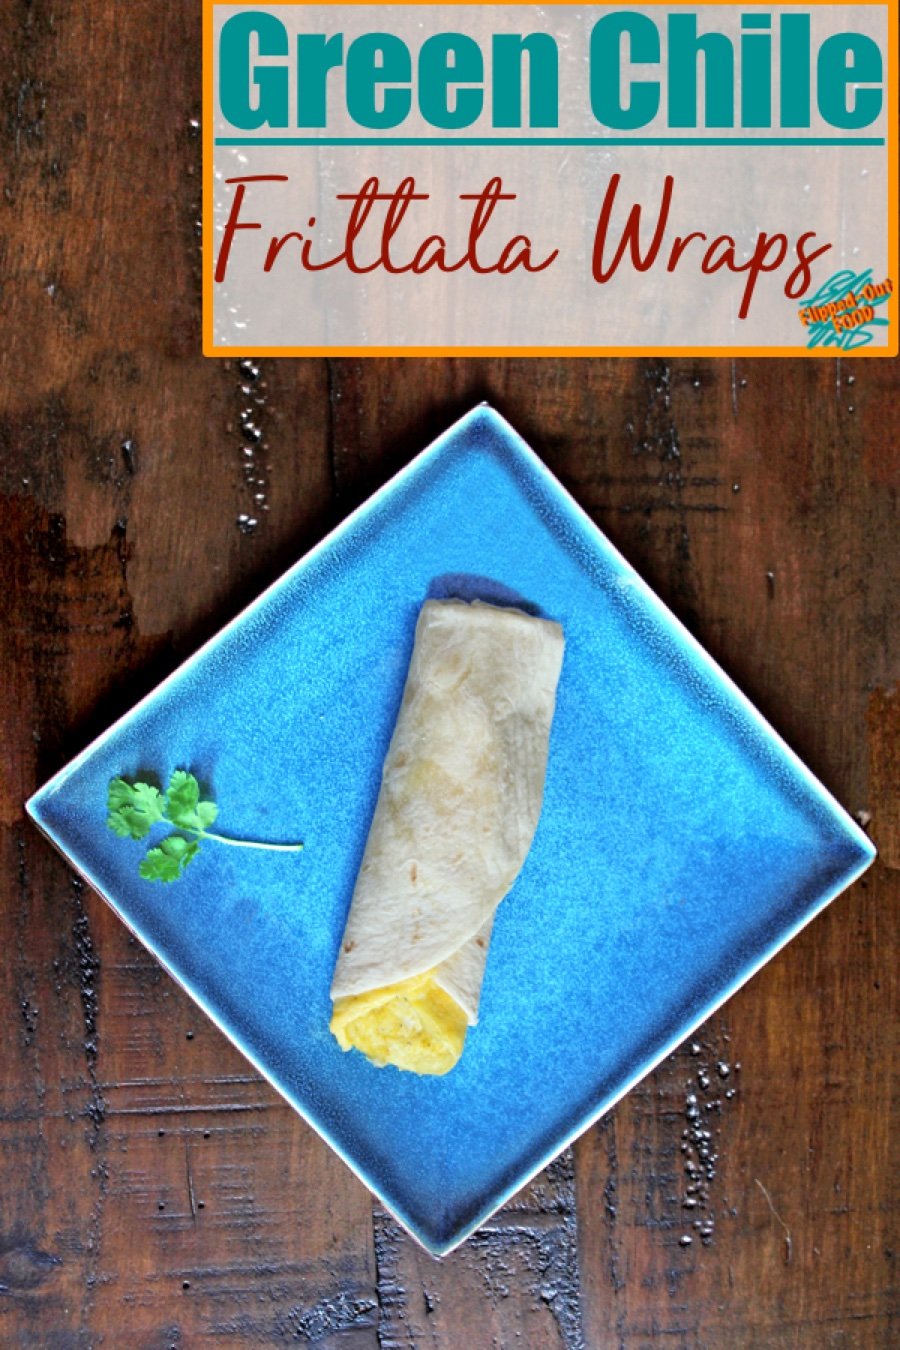 One-Egg Green Chile Frittata Wraps are the ultimate, easy grab-and-go breakfast. Done in 10 minutes! #breakfast #brunch #frittata #breakfastwrap #easybreakfast #healthyeating #flippedoutfood via @FlippedOutFood